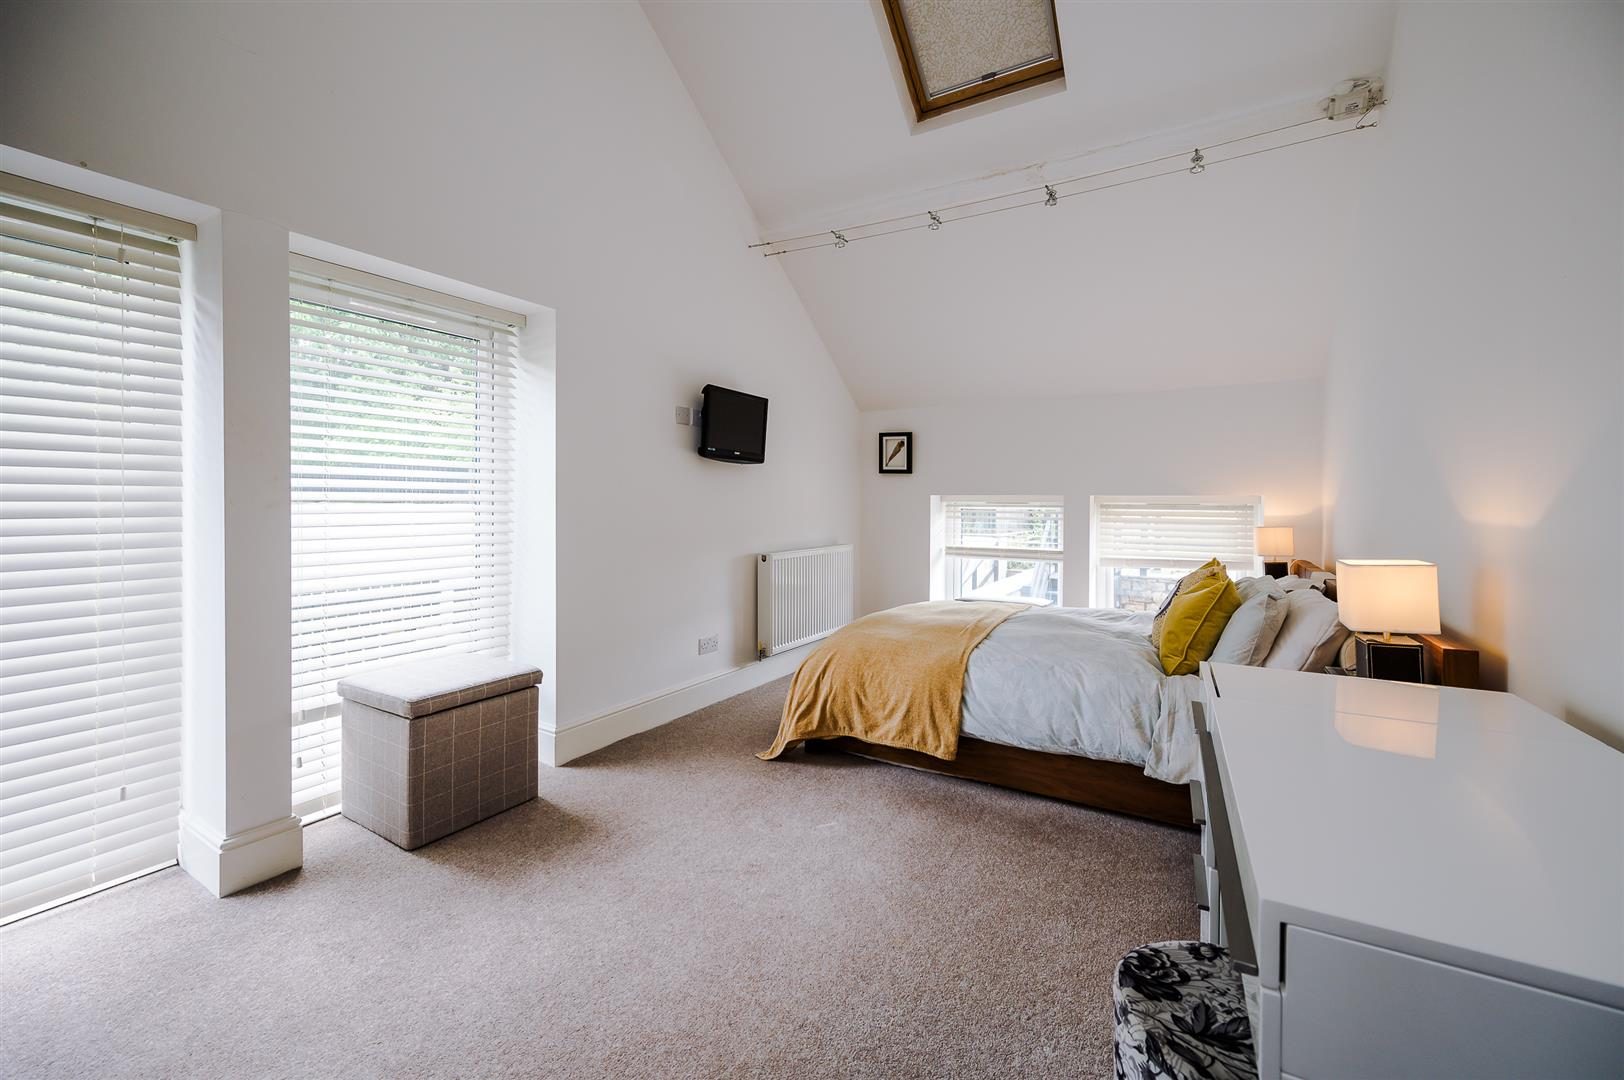 3 bedroom house For Sale in Bolton - DSC_5833.jpg.